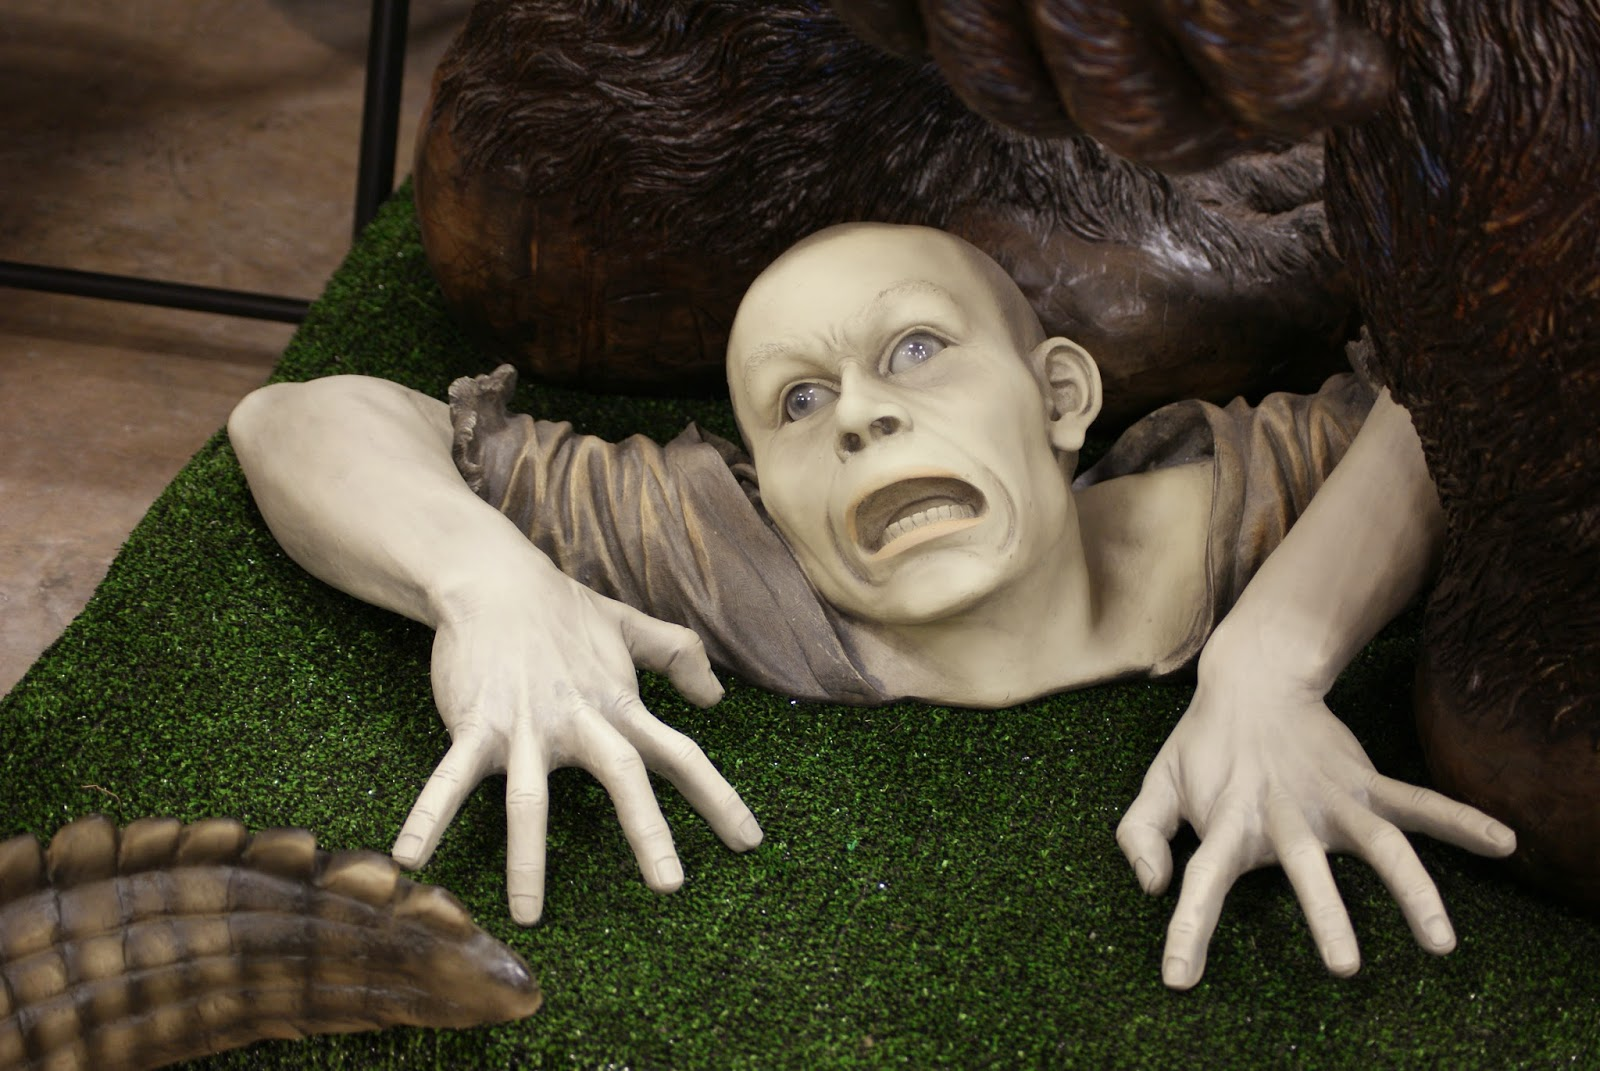 Zombie Lawn Ornament for your lawn